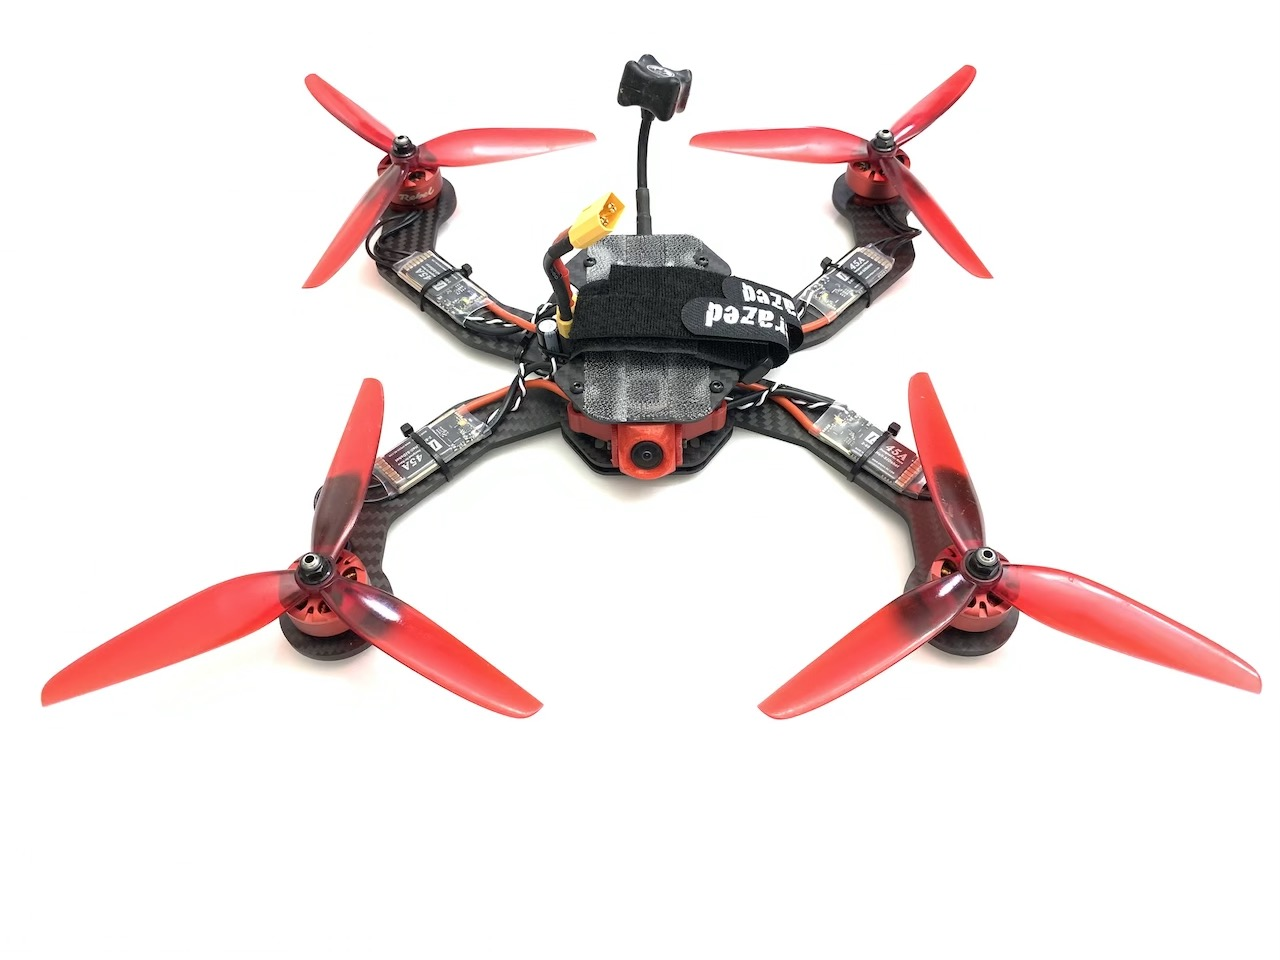 Craze 310 Long Range Quad Frame Kit